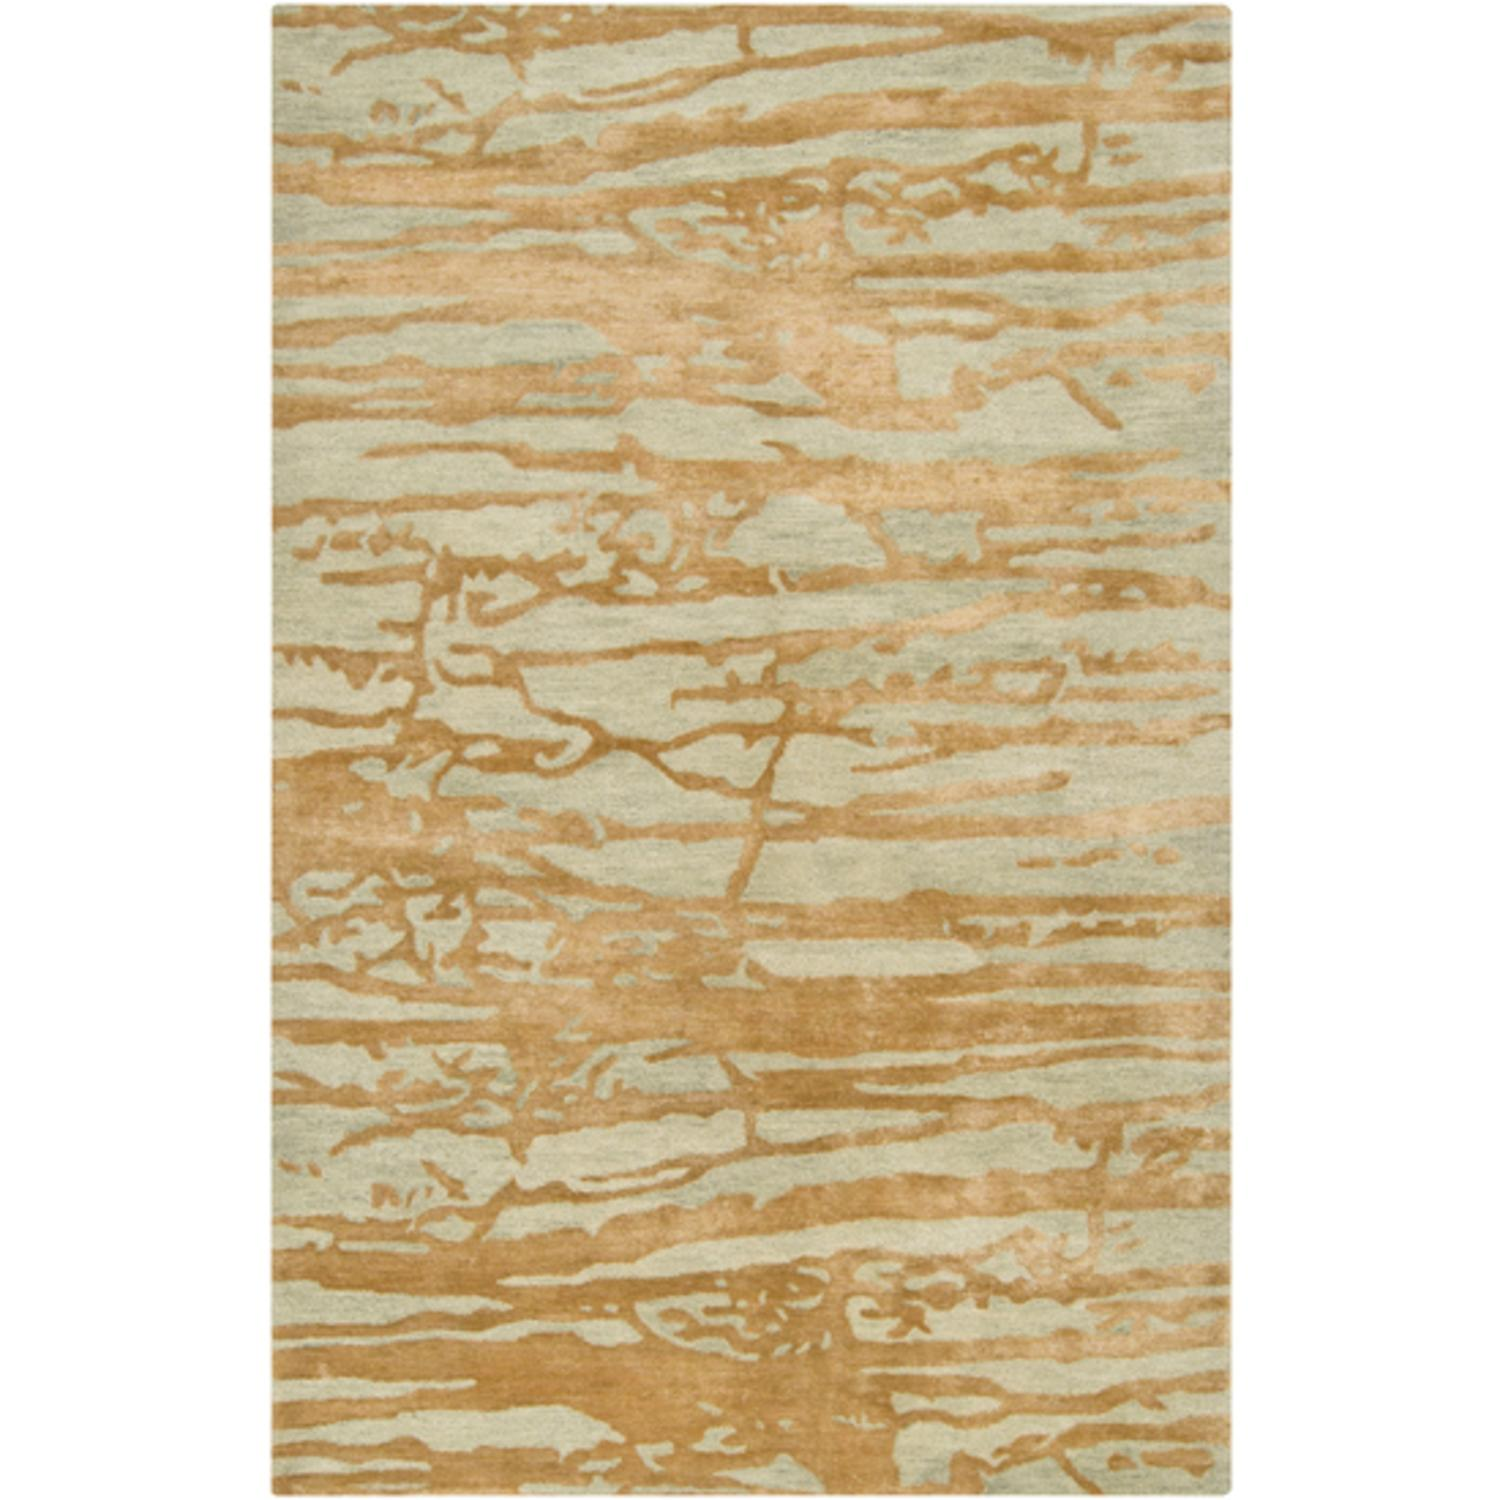 2.5' x 8' Grotto Mountain Rock Soft Sage Green and Gold Wool Area Throw Rug